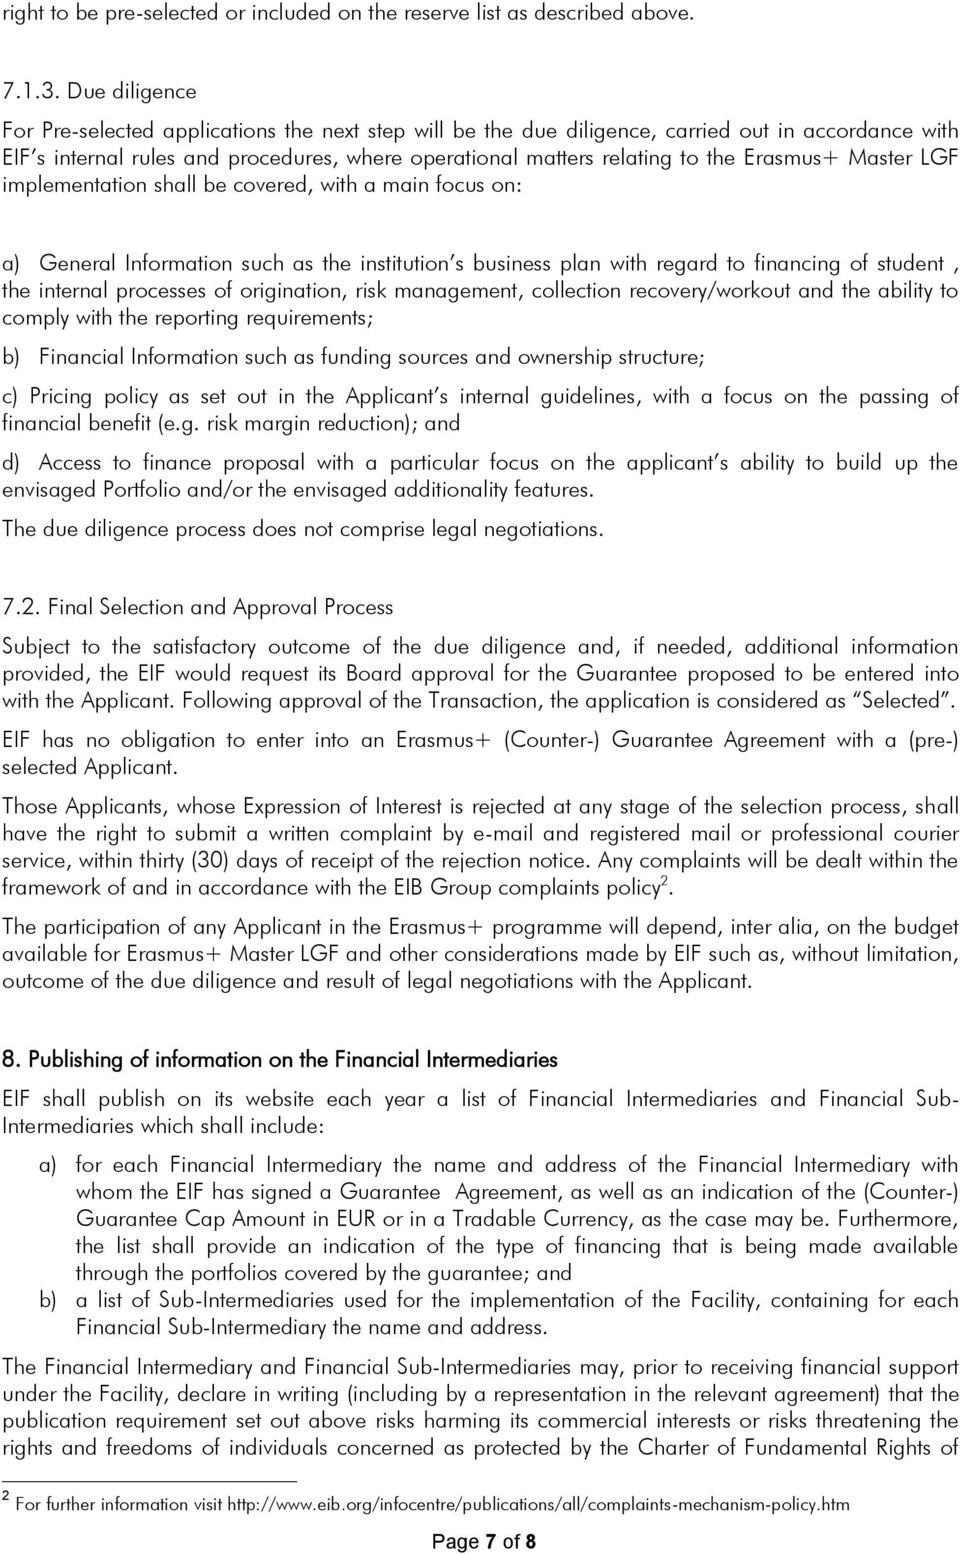 Erasmus+ Master LGF implementation shall be covered, with a main focus on: a) General Information such as the institution s business plan with regard to financing of student, the internal processes